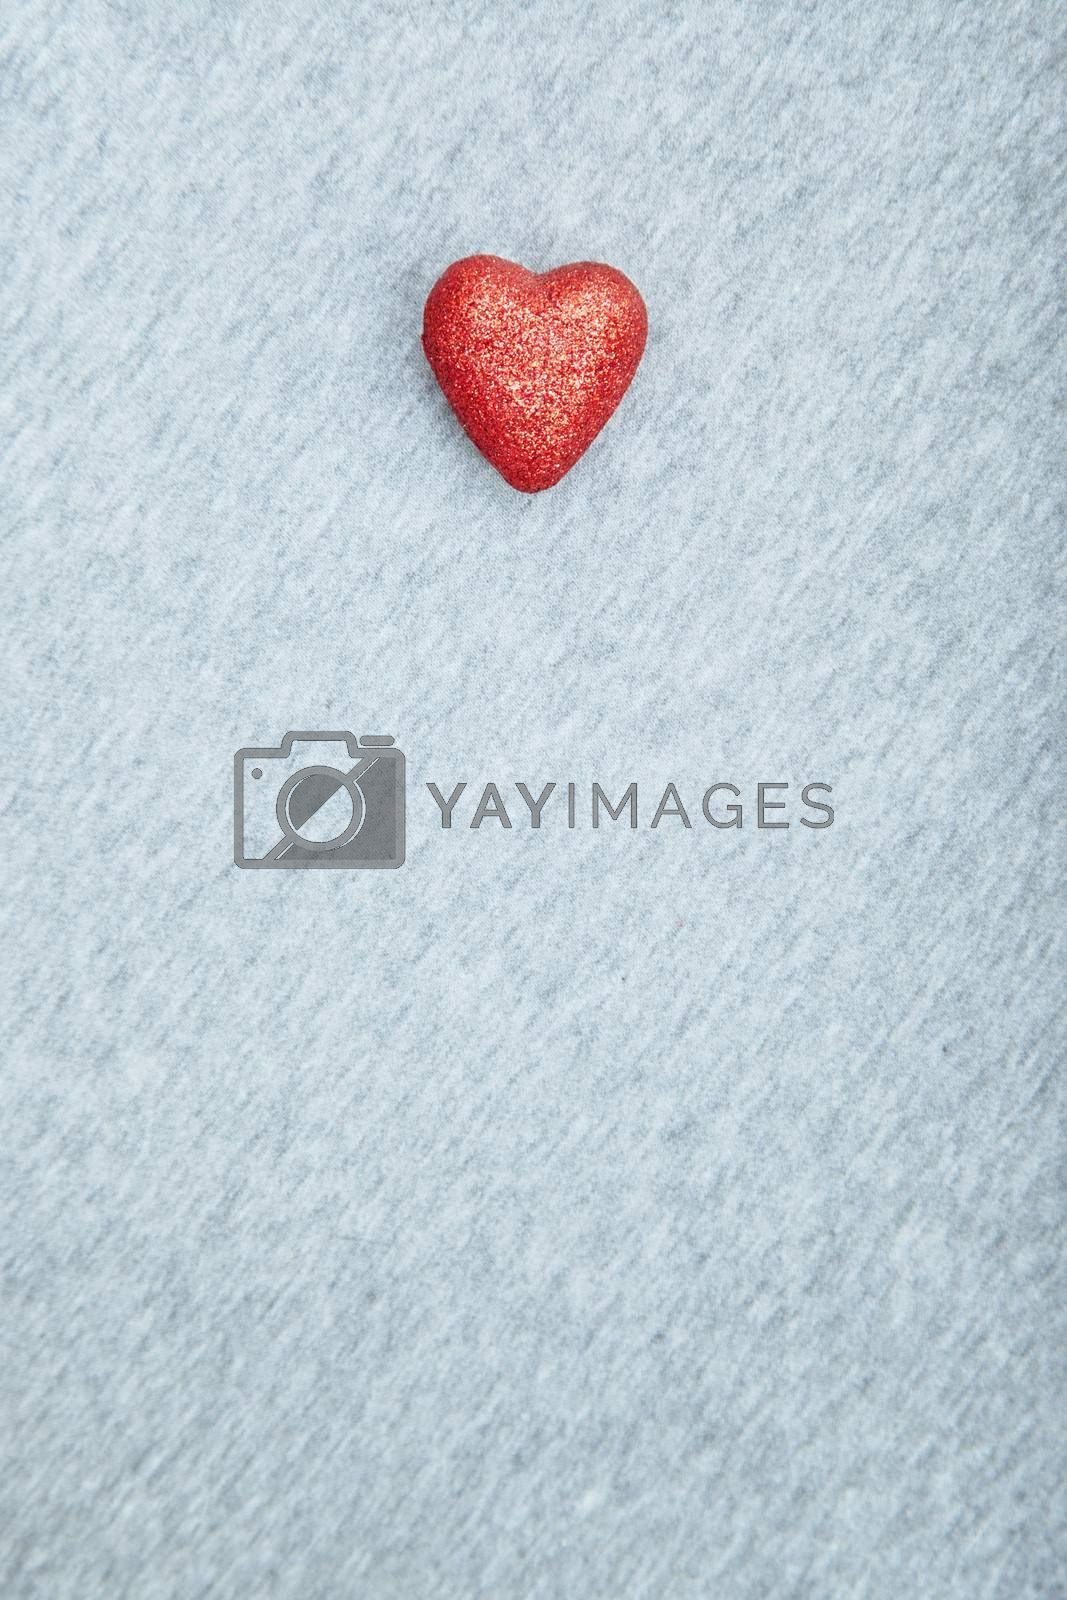 Red heart of love on a textured background